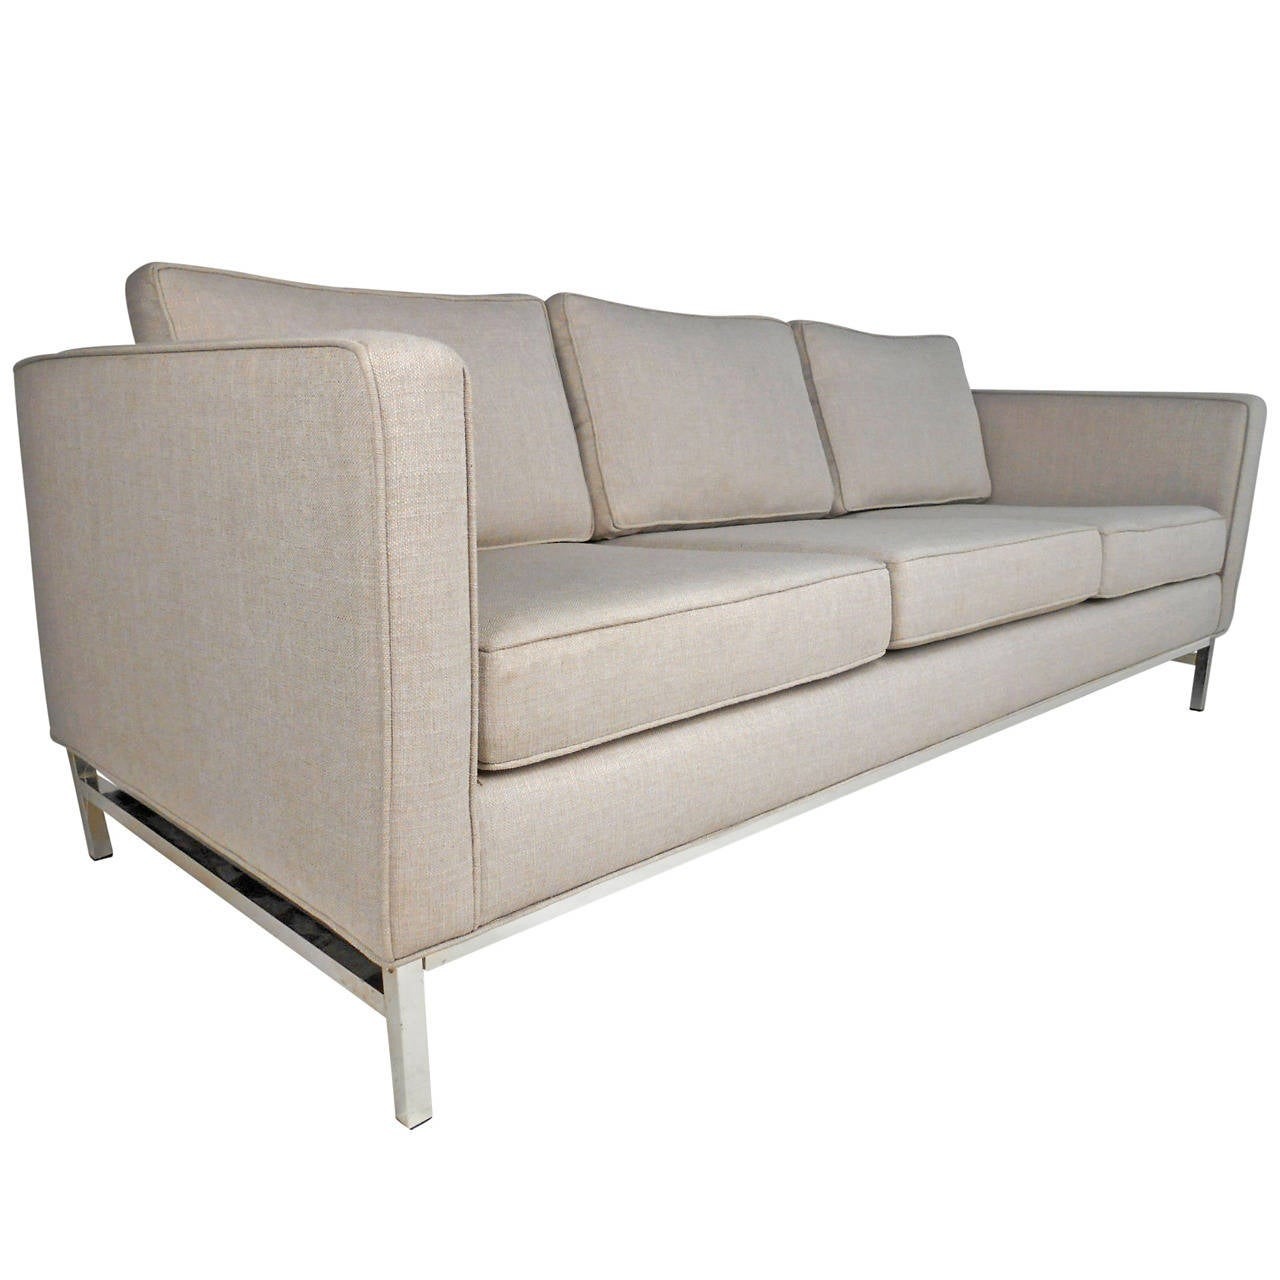 exquisite mid century modern florence knoll style sofa at 1stdibs. Black Bedroom Furniture Sets. Home Design Ideas